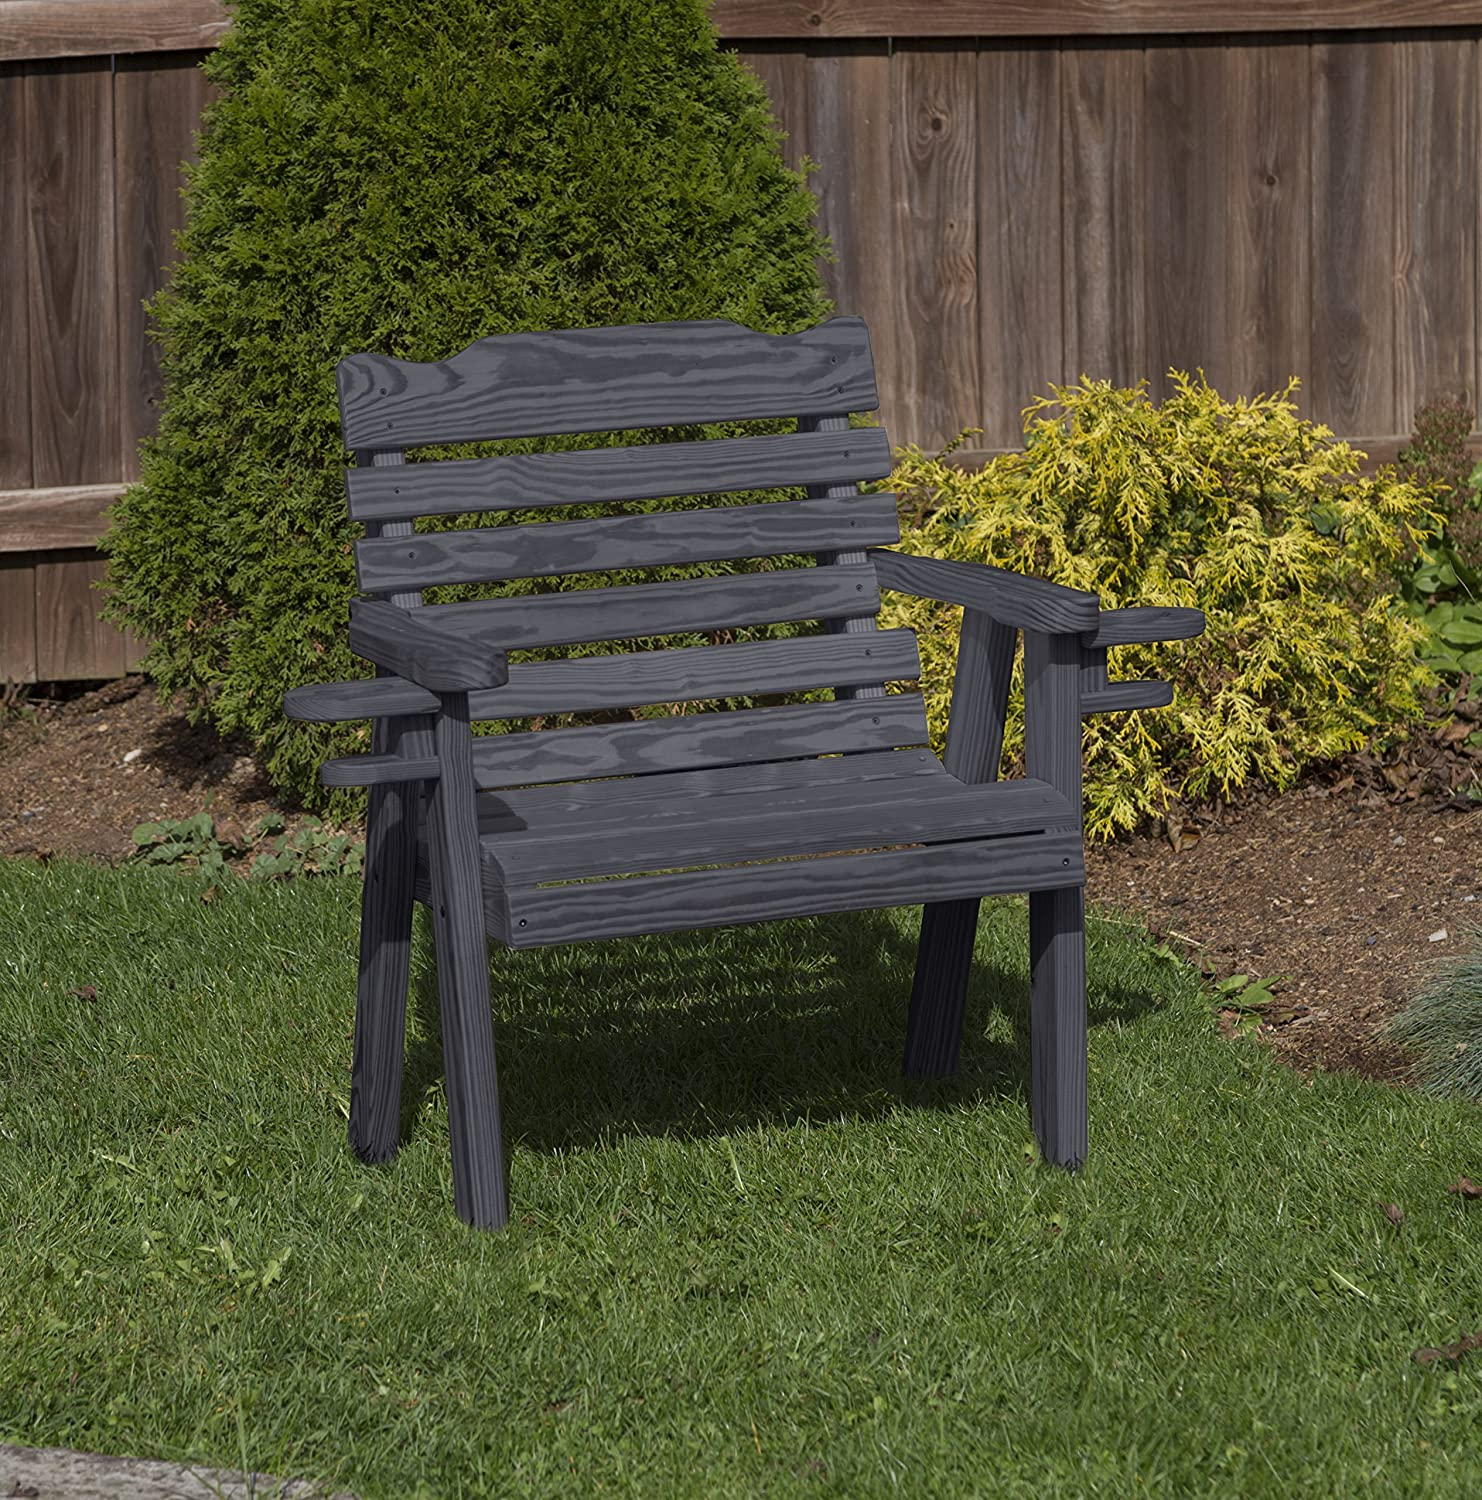 Amish Heavy Duty 800 Lb Classic Park Style Pressure Treated Garden Patio Outdoor Bench Chair 2 FEET with Cup Holders Black-Made in USA